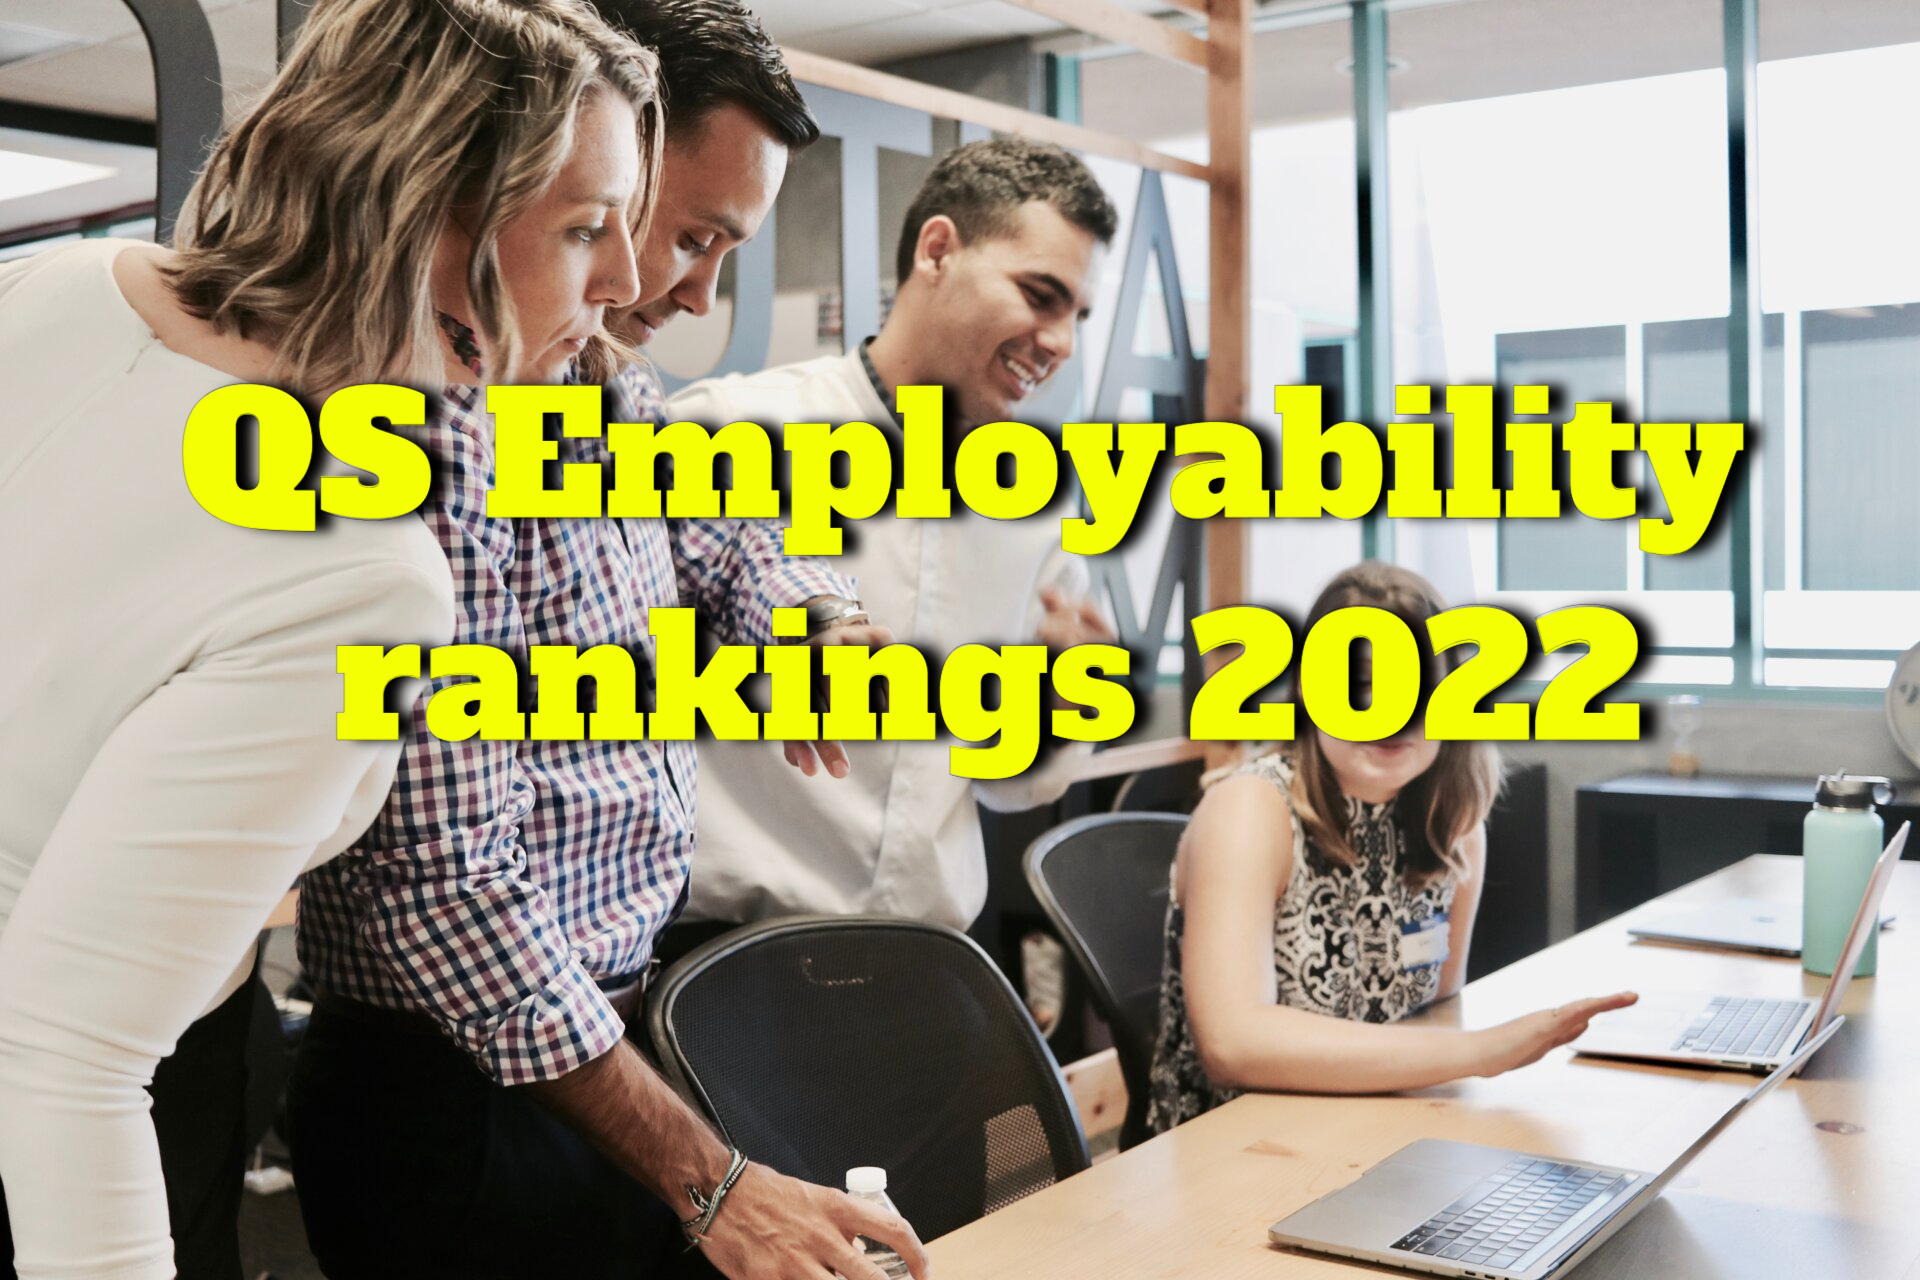 QS Employability rankings place IISc Bengaluru and 6 IITs in top 500 universities in the world